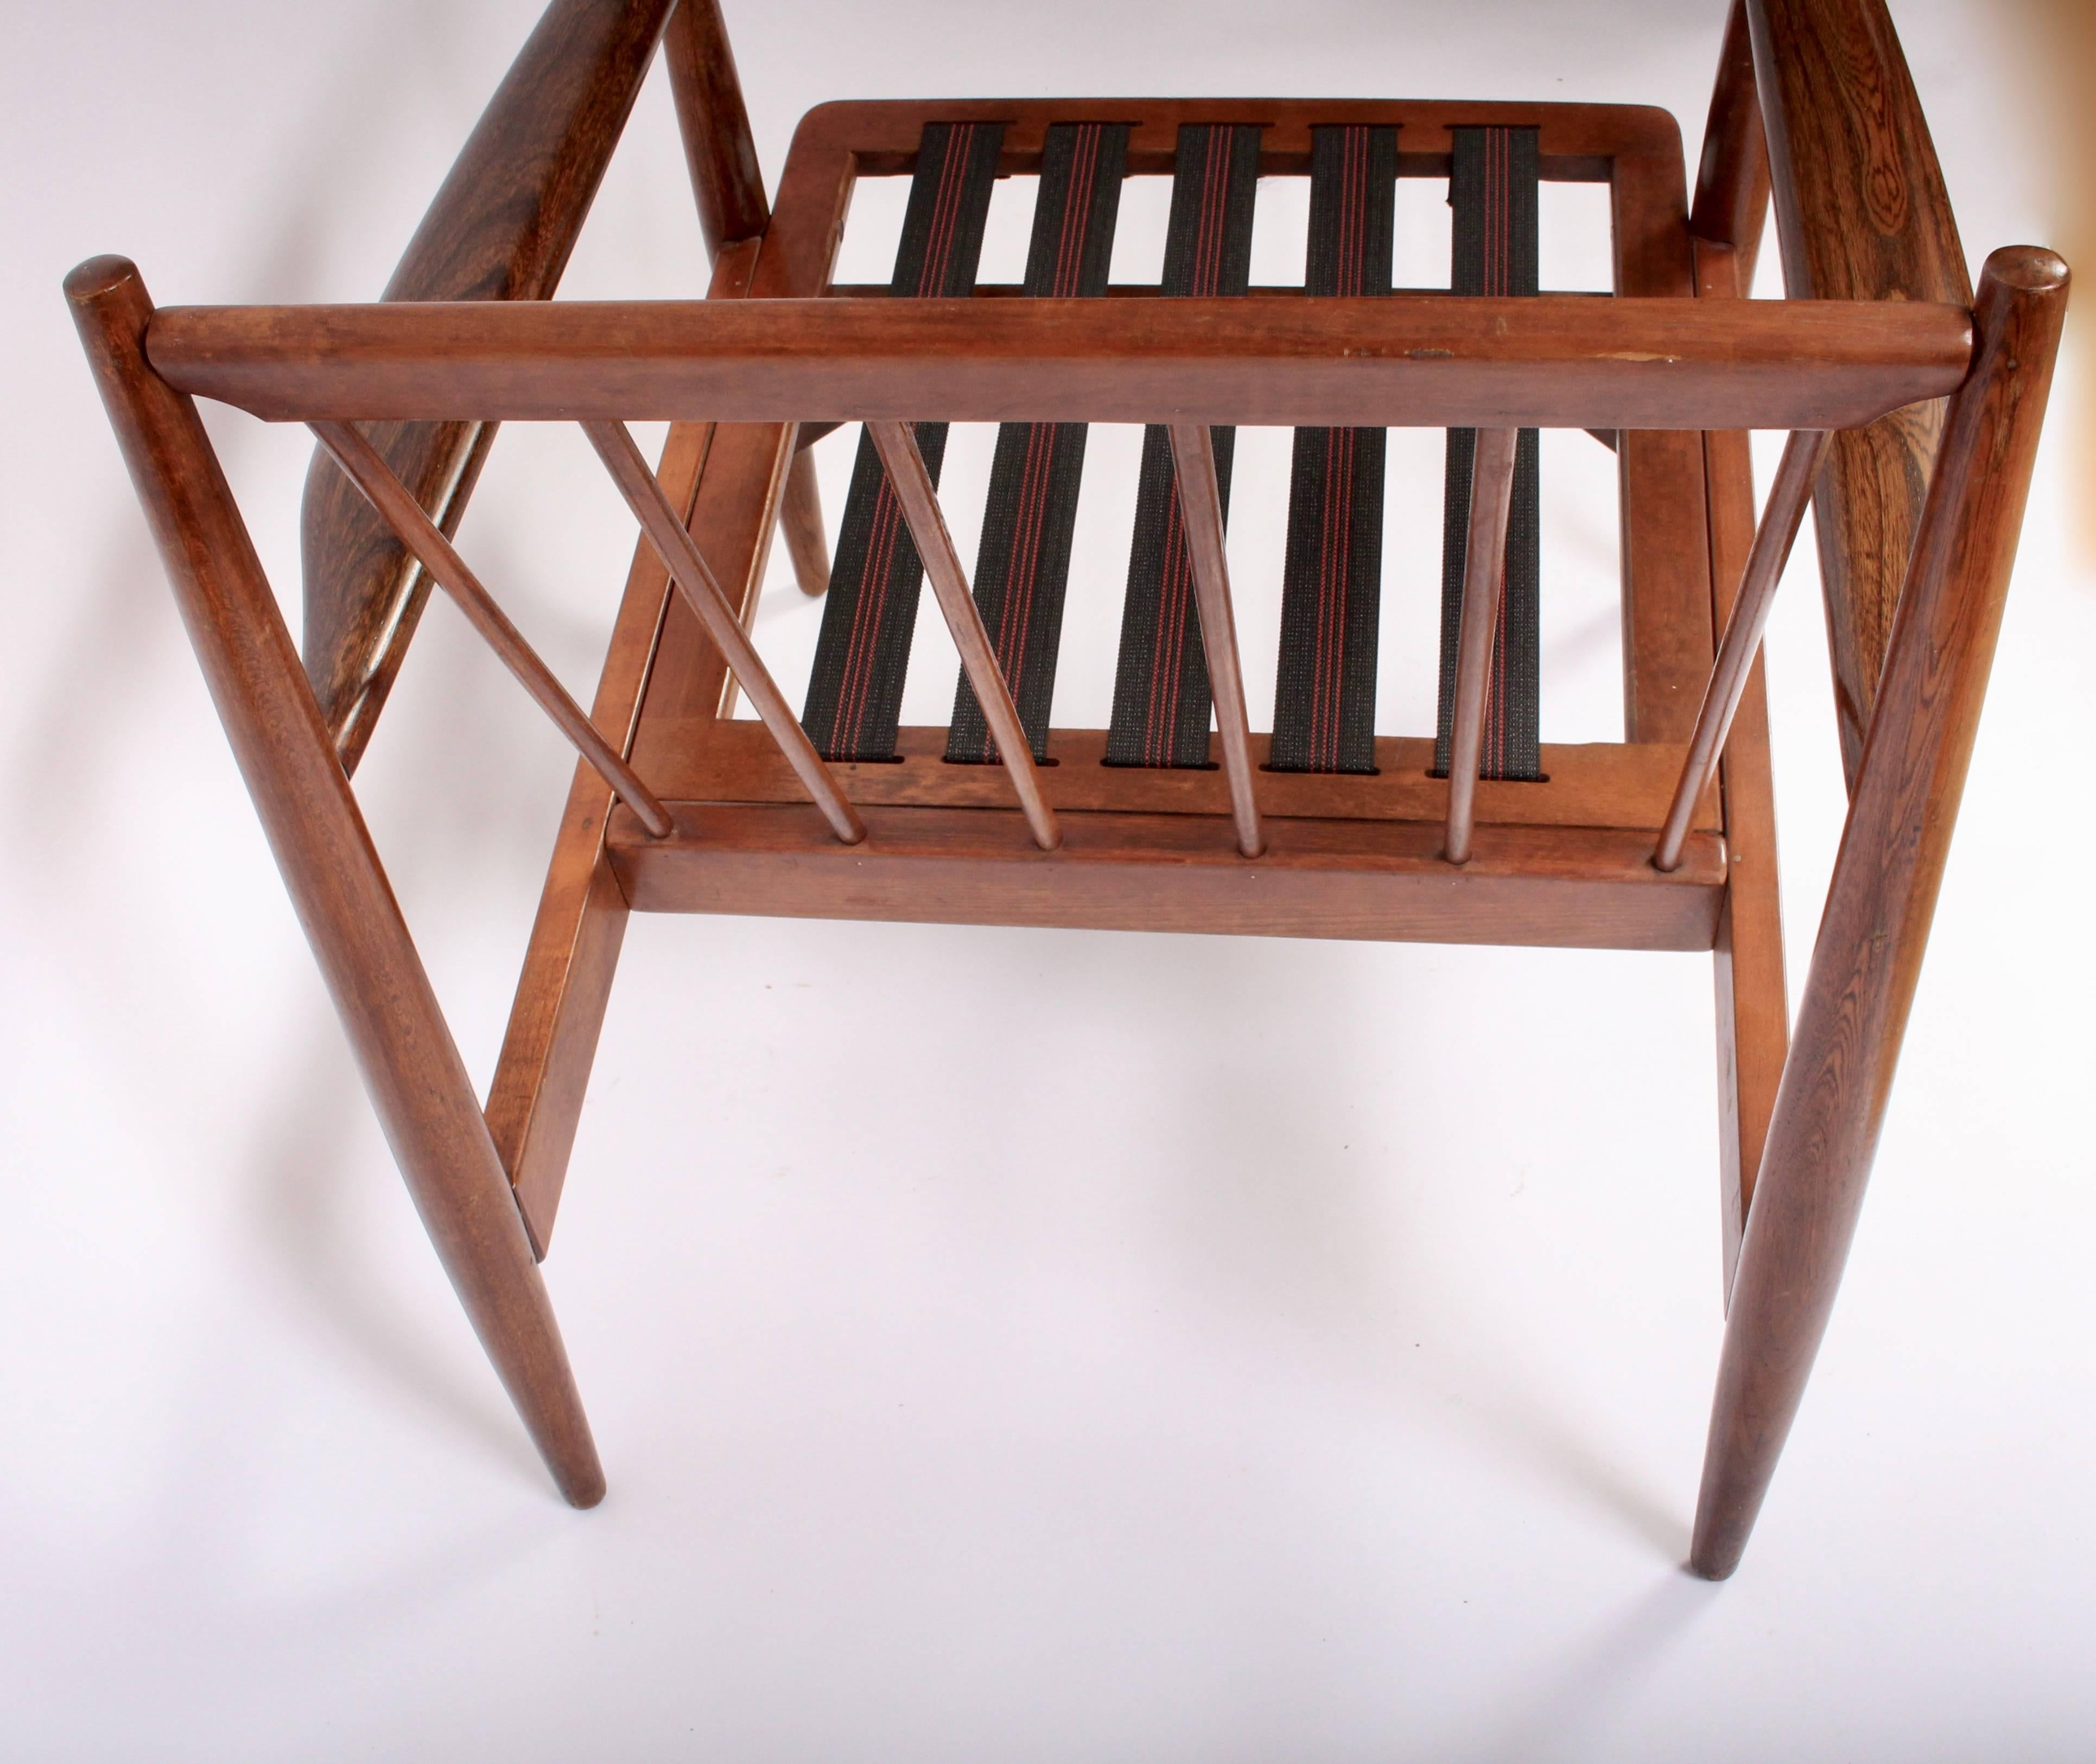 Dating baumritter furniture for sale